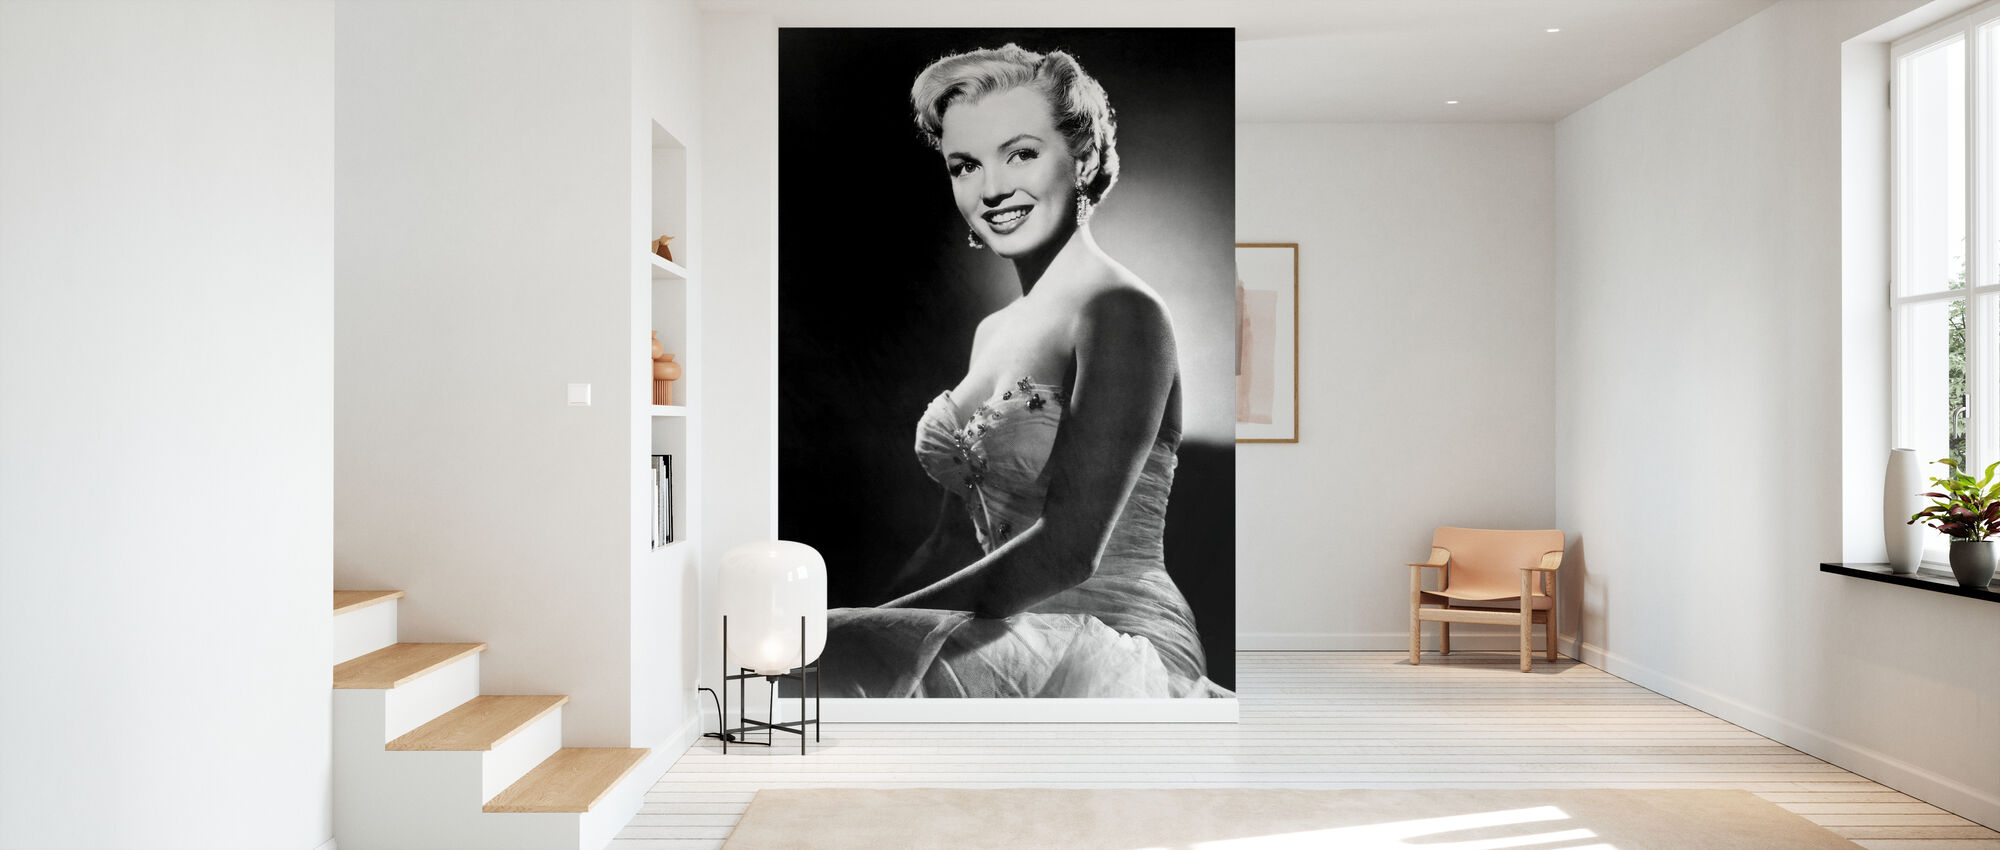 All about Eve - Wallpaper - Hallway